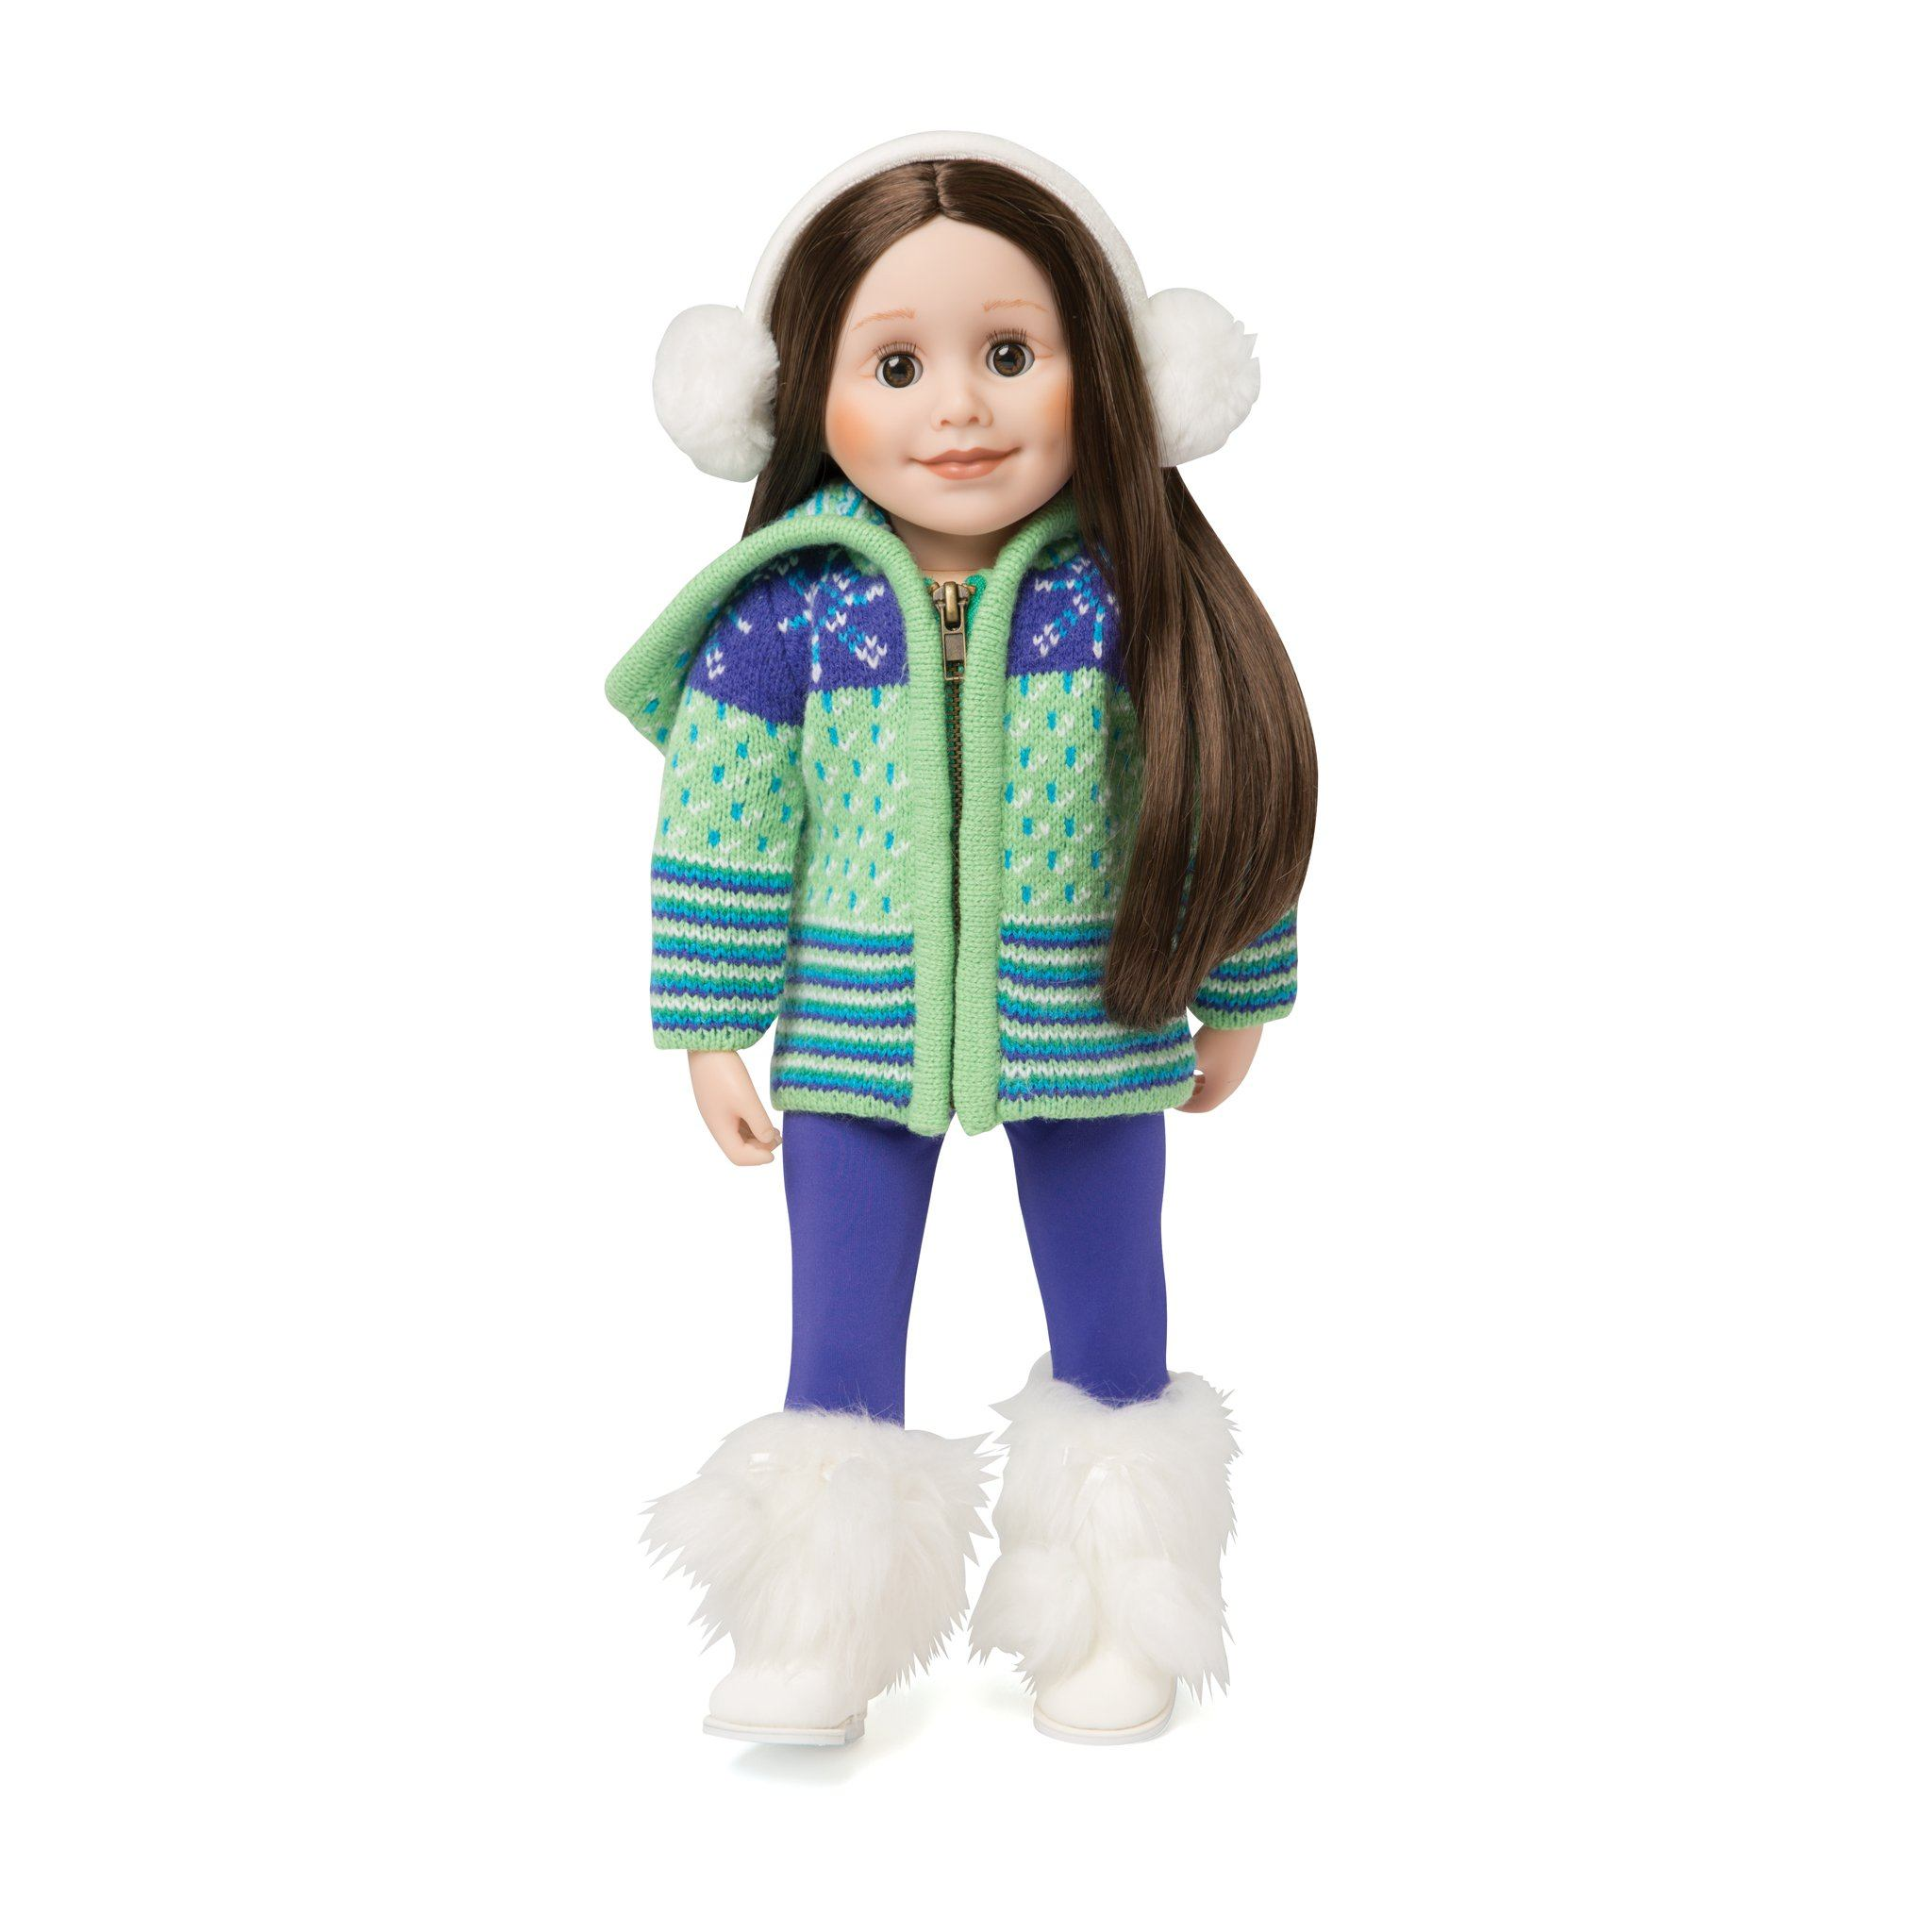 Colourful cozy apres ski green and purple zip up sweater, purple tights, and white fluffy earmuffs. Fits all 18 inch dolls. Shown with white fluffy Maple Lodge boots.